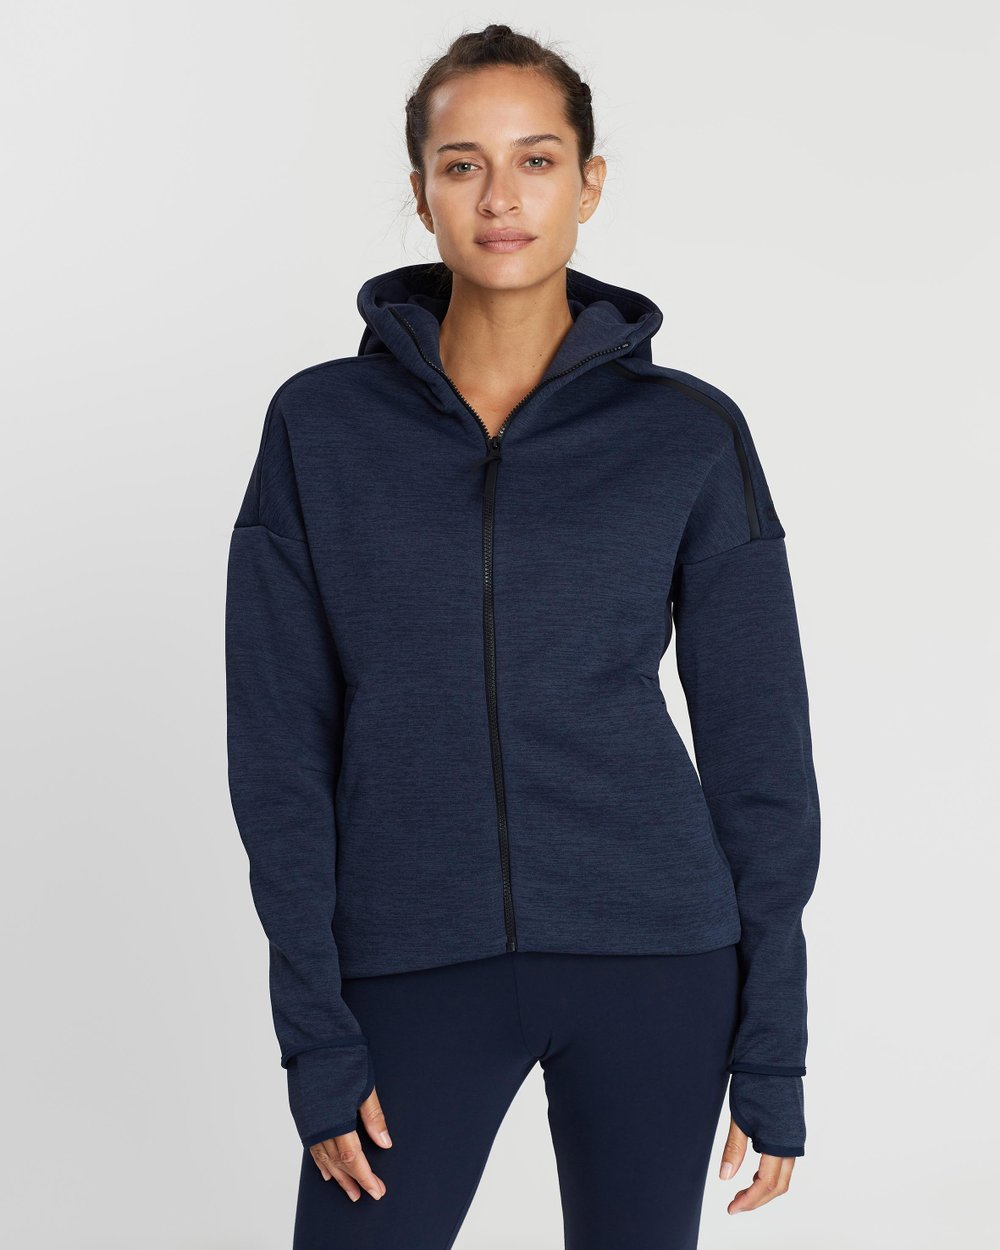 e3107e8e512 Z.N.E Fast Release Hoodie by adidas Performance Online